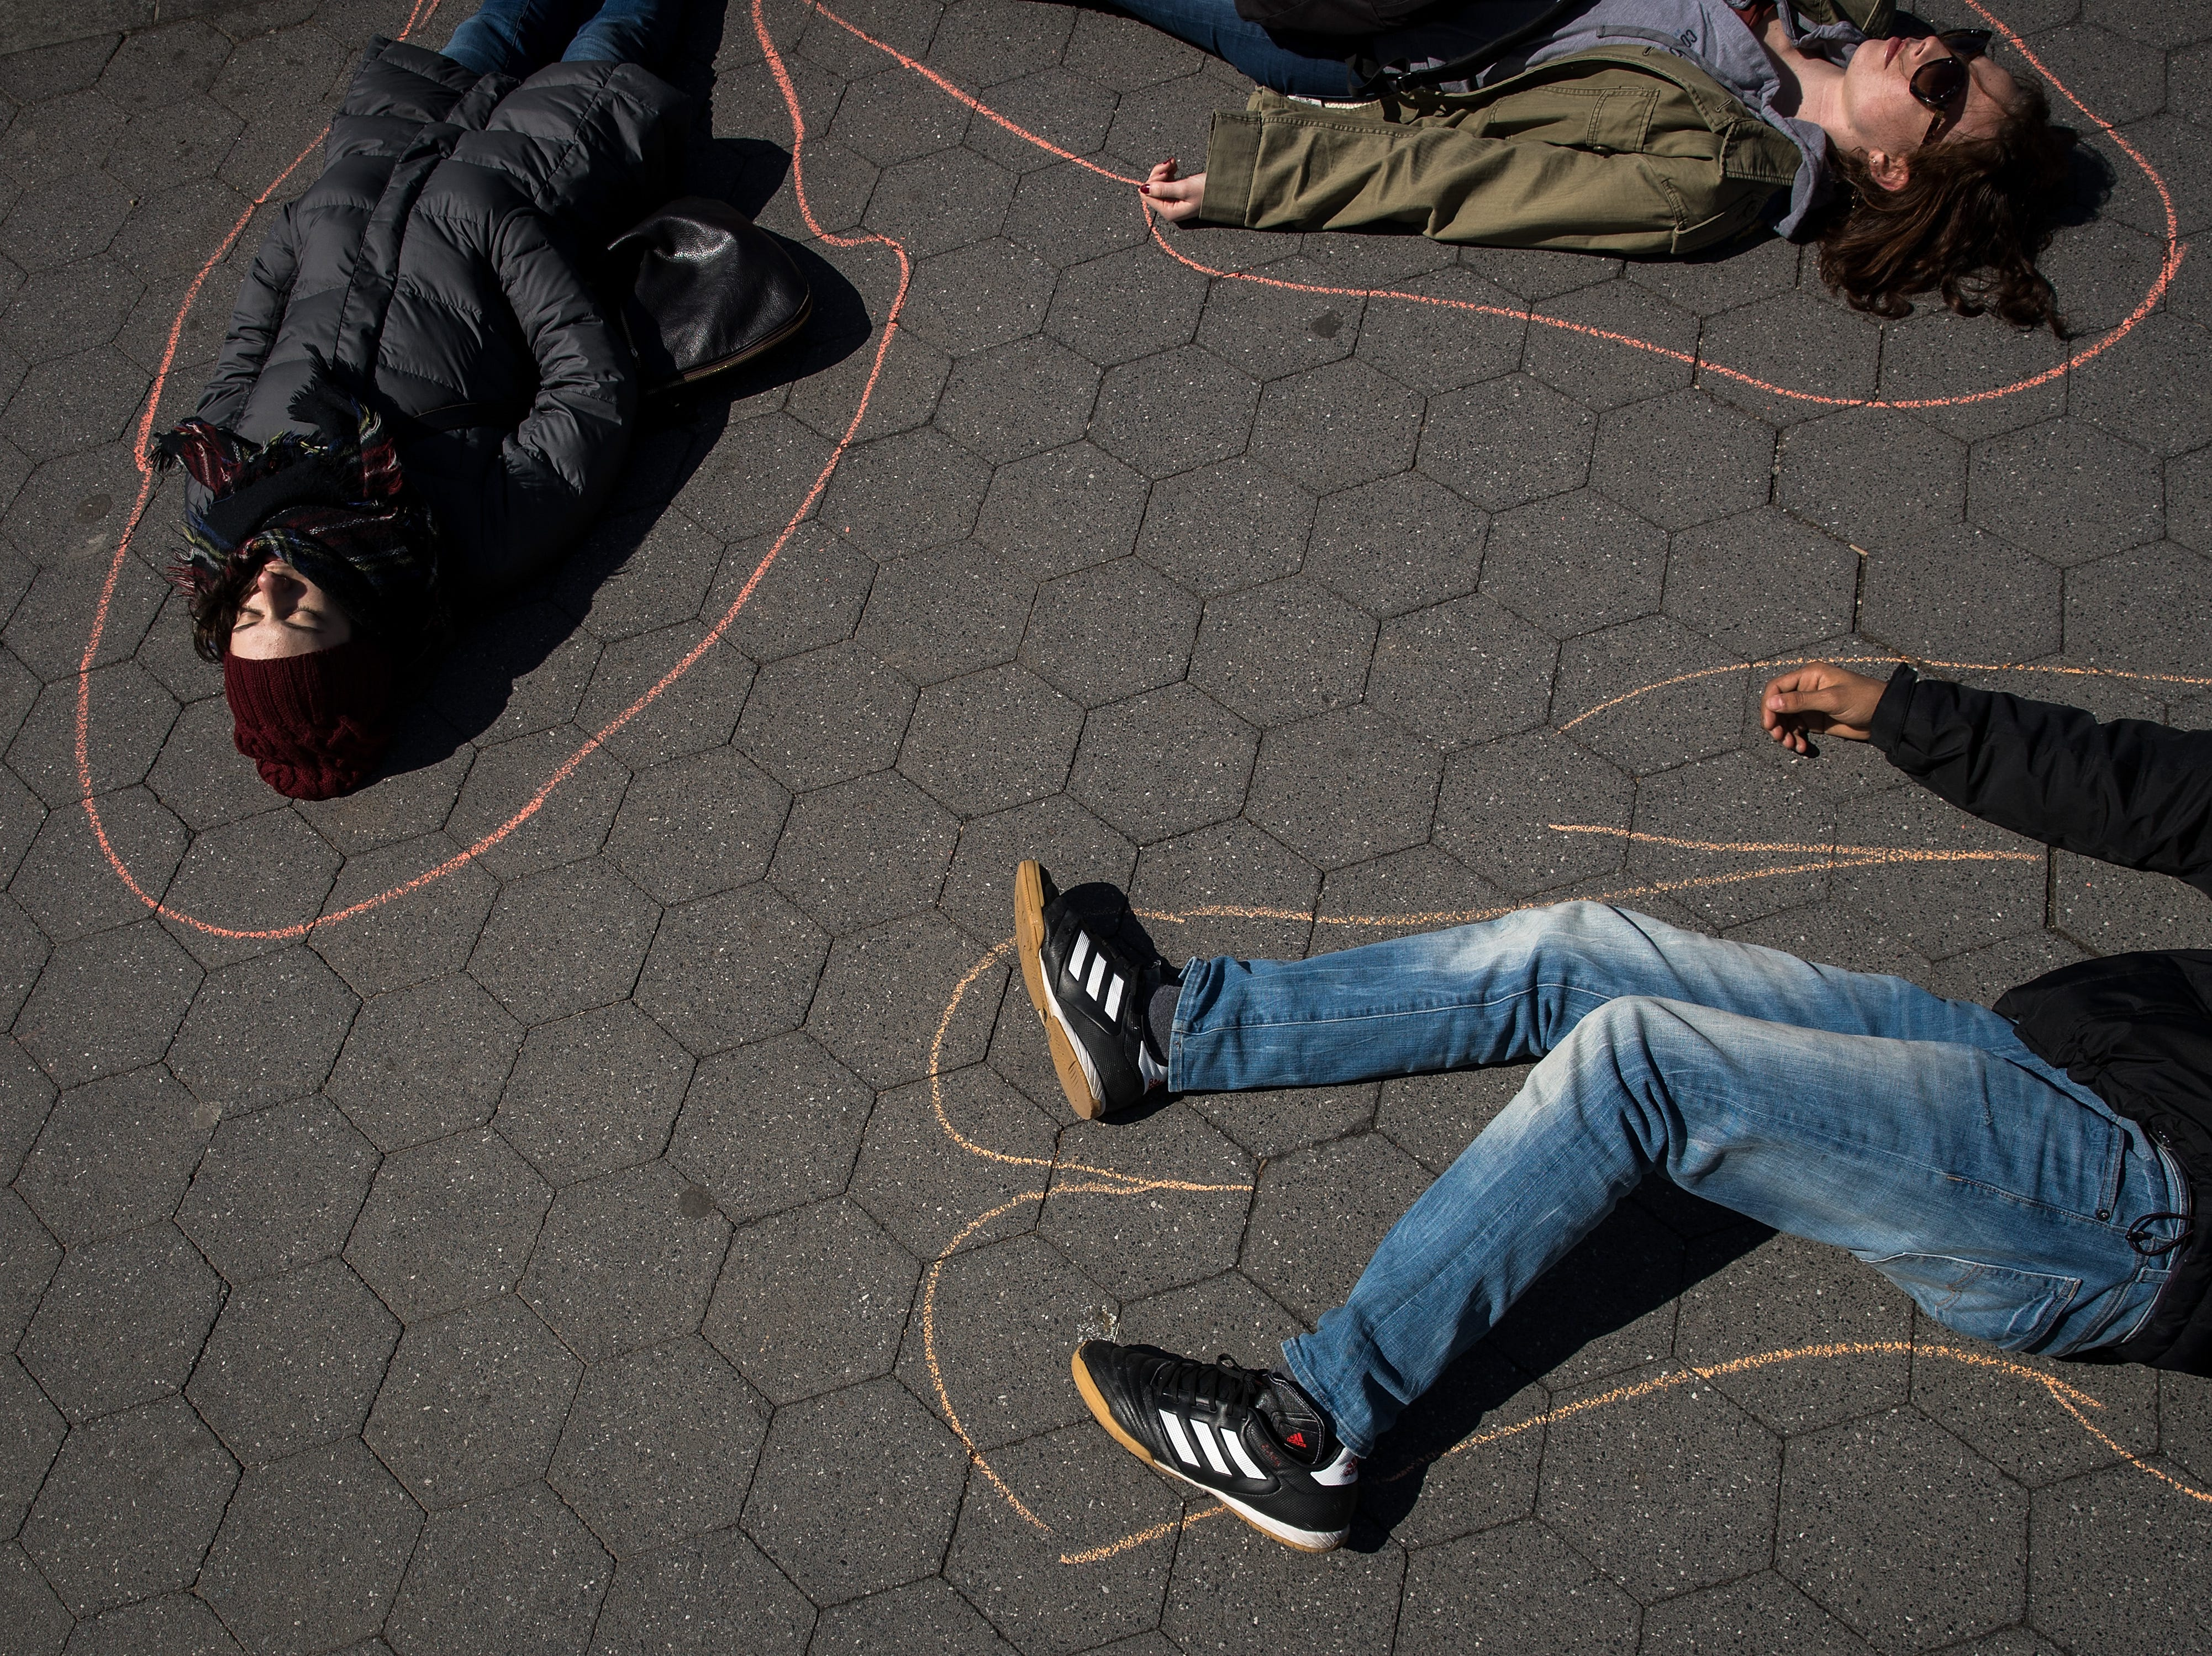 April 20, 2018: Student activists participate in a 'die-in' to protest gun violence at Washington Square Park, near the campus of New York University in New York City. On the anniversary of the 1999 Columbine High School mass shooting, student activists across the country are participating in school walkouts to demand action on gun reform.